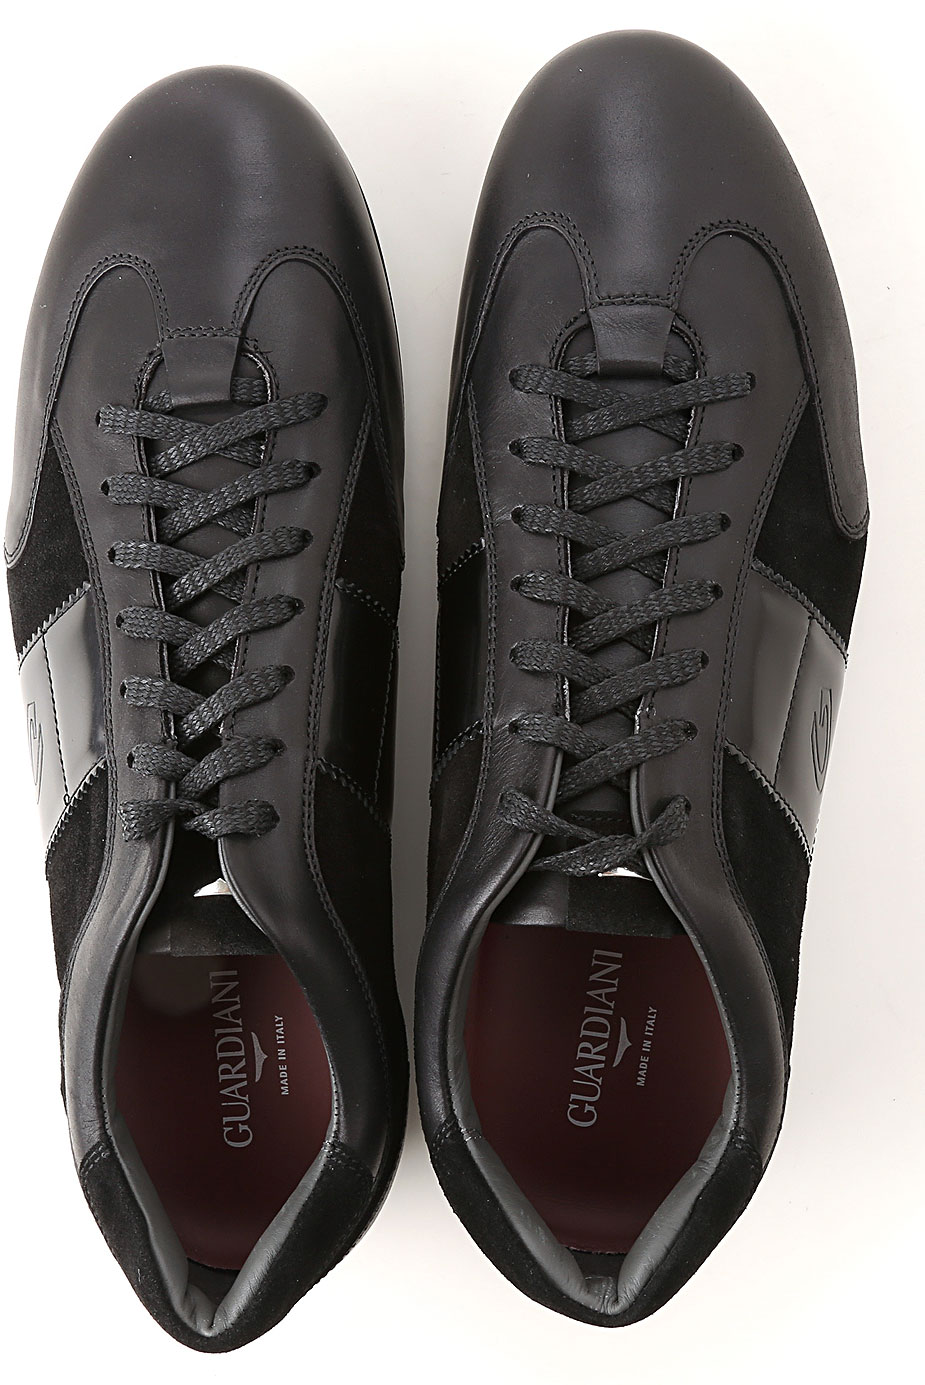 Alberto Guardiani Shoes Brogues Leather Perforated Rubber